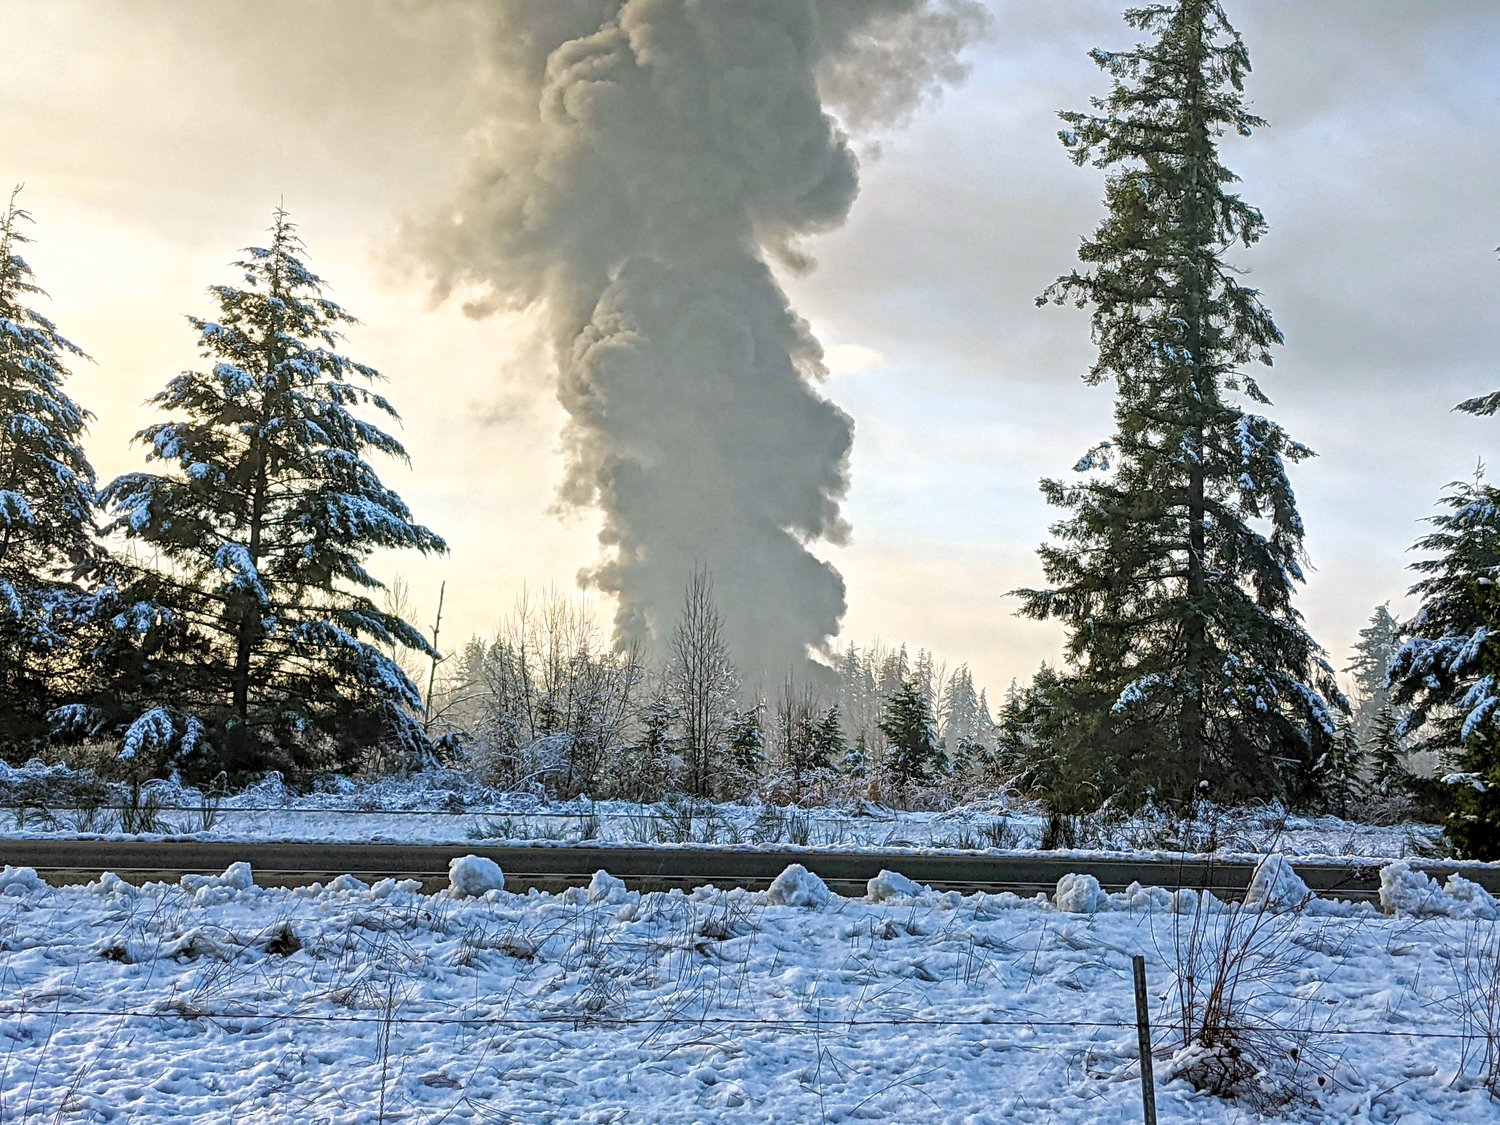 The Custer train derailment sent a plume of smoke into the air on December 22.